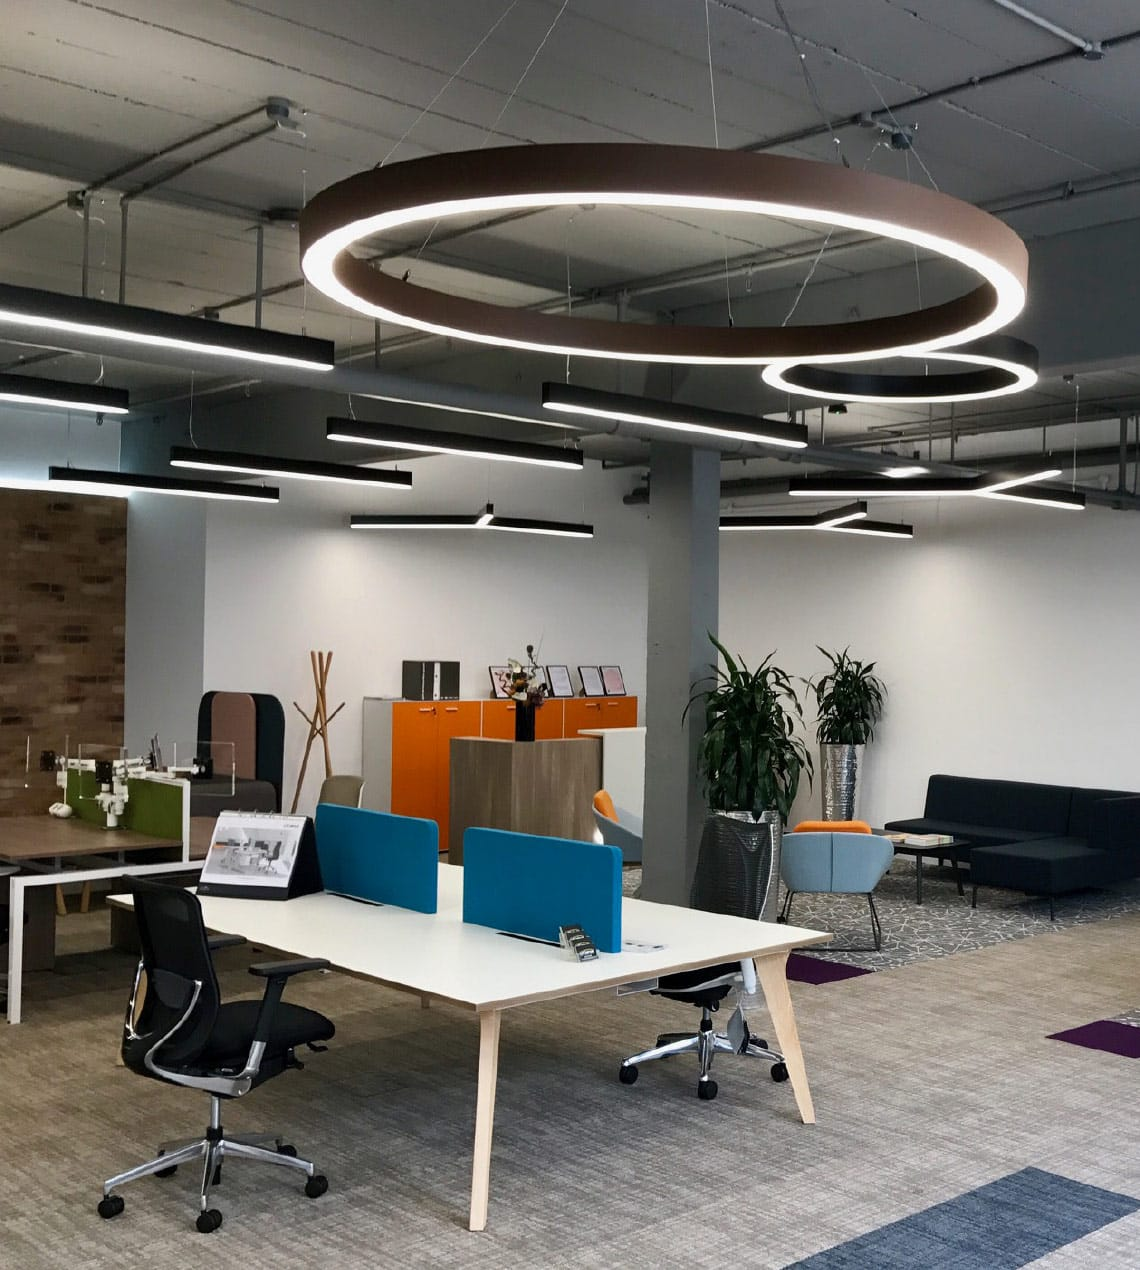 circular bespoke suspended lighting for offices